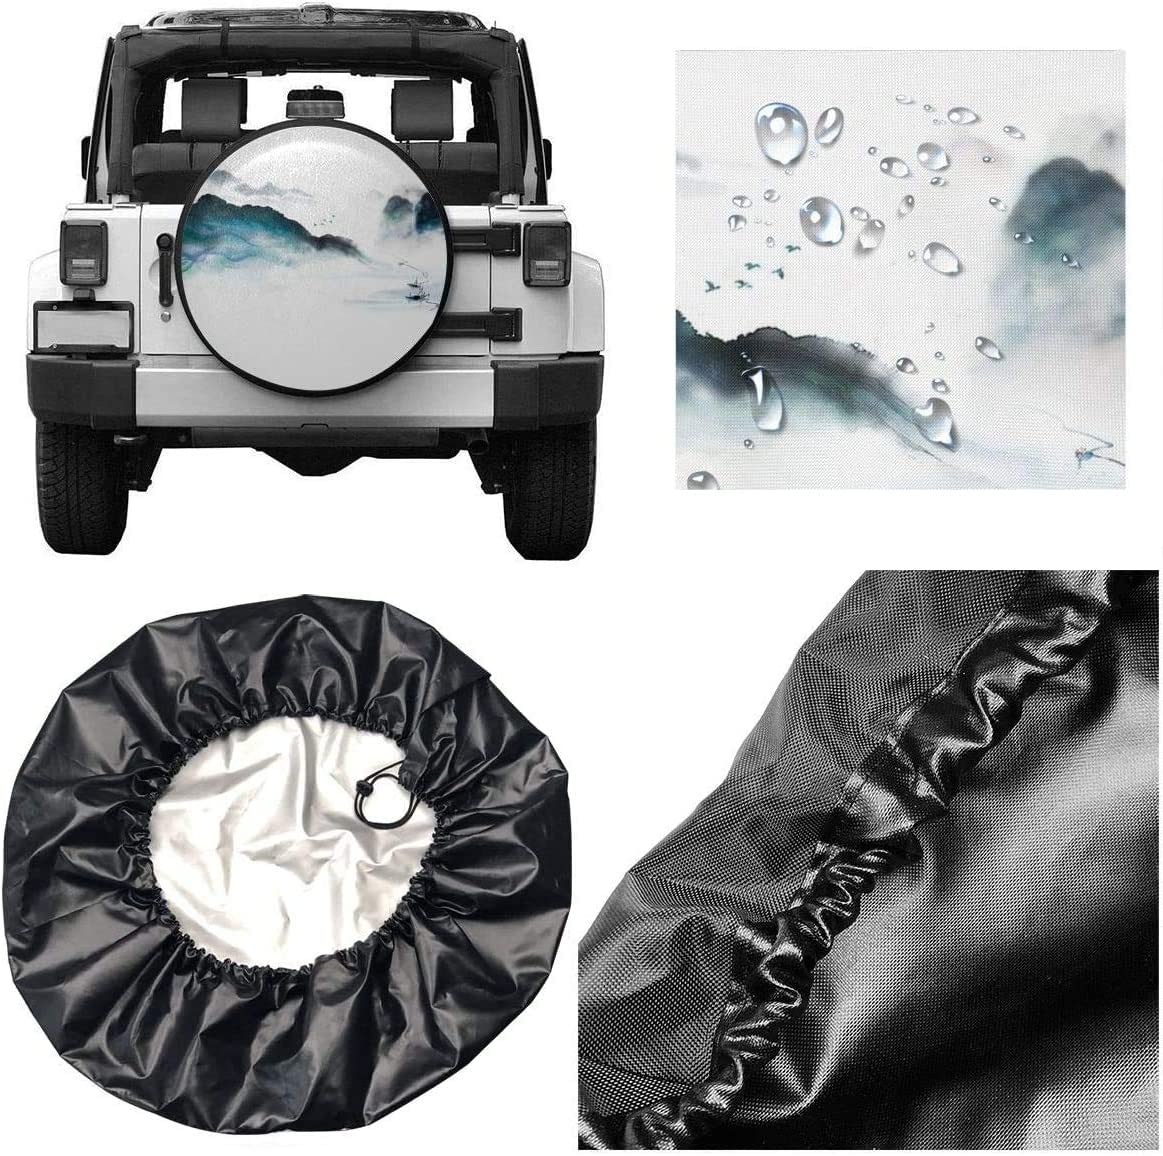 14 15 16 17 gthytjhv Reserveradabdeckung Vintage Mountain Boat Watercolor Polyester Universal Waterproof Wheel Covers for Trailer RV SUV Truck and Many Vehicles